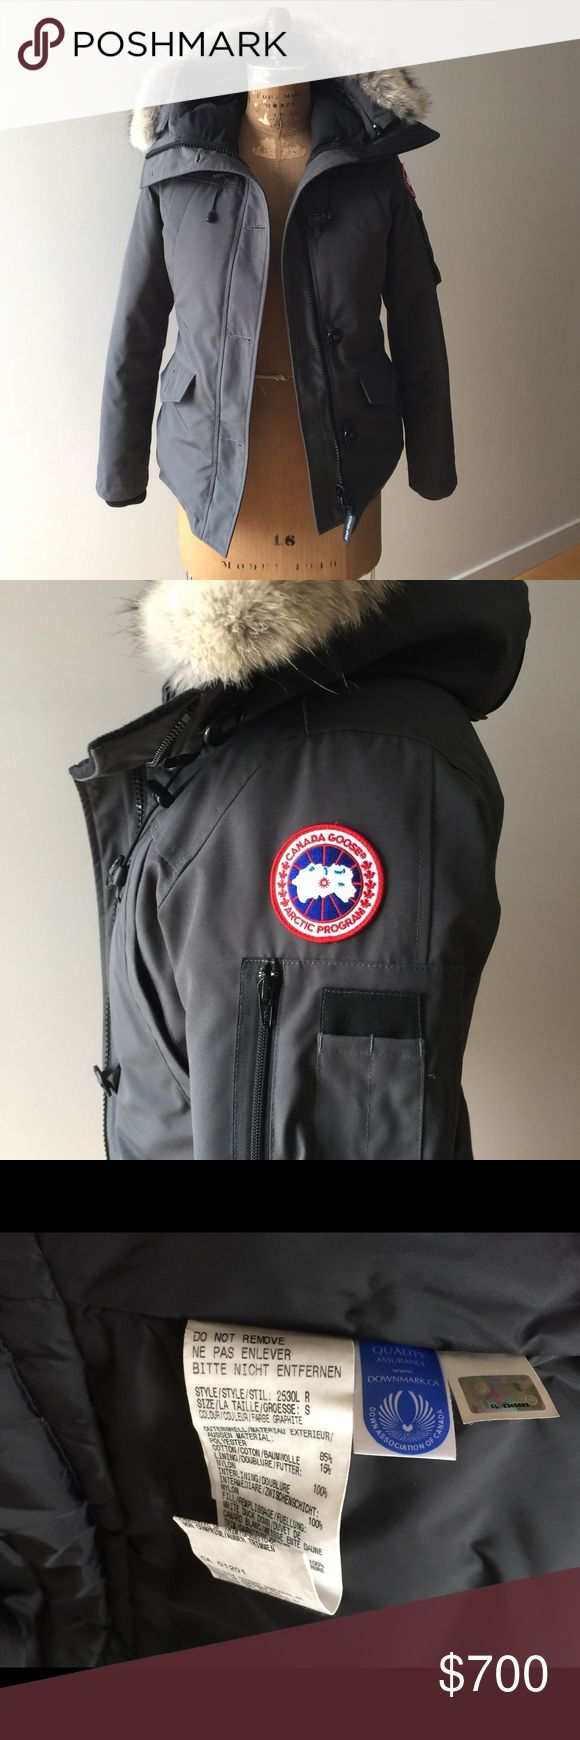 Authentic Canada Goose Montebello Parka Coat Worn maybe 3-4 times....Perfect Condition!!!! it's just to tight on me...need a Medium...Women's Small Canada Goose Jackets & Coats Puffers